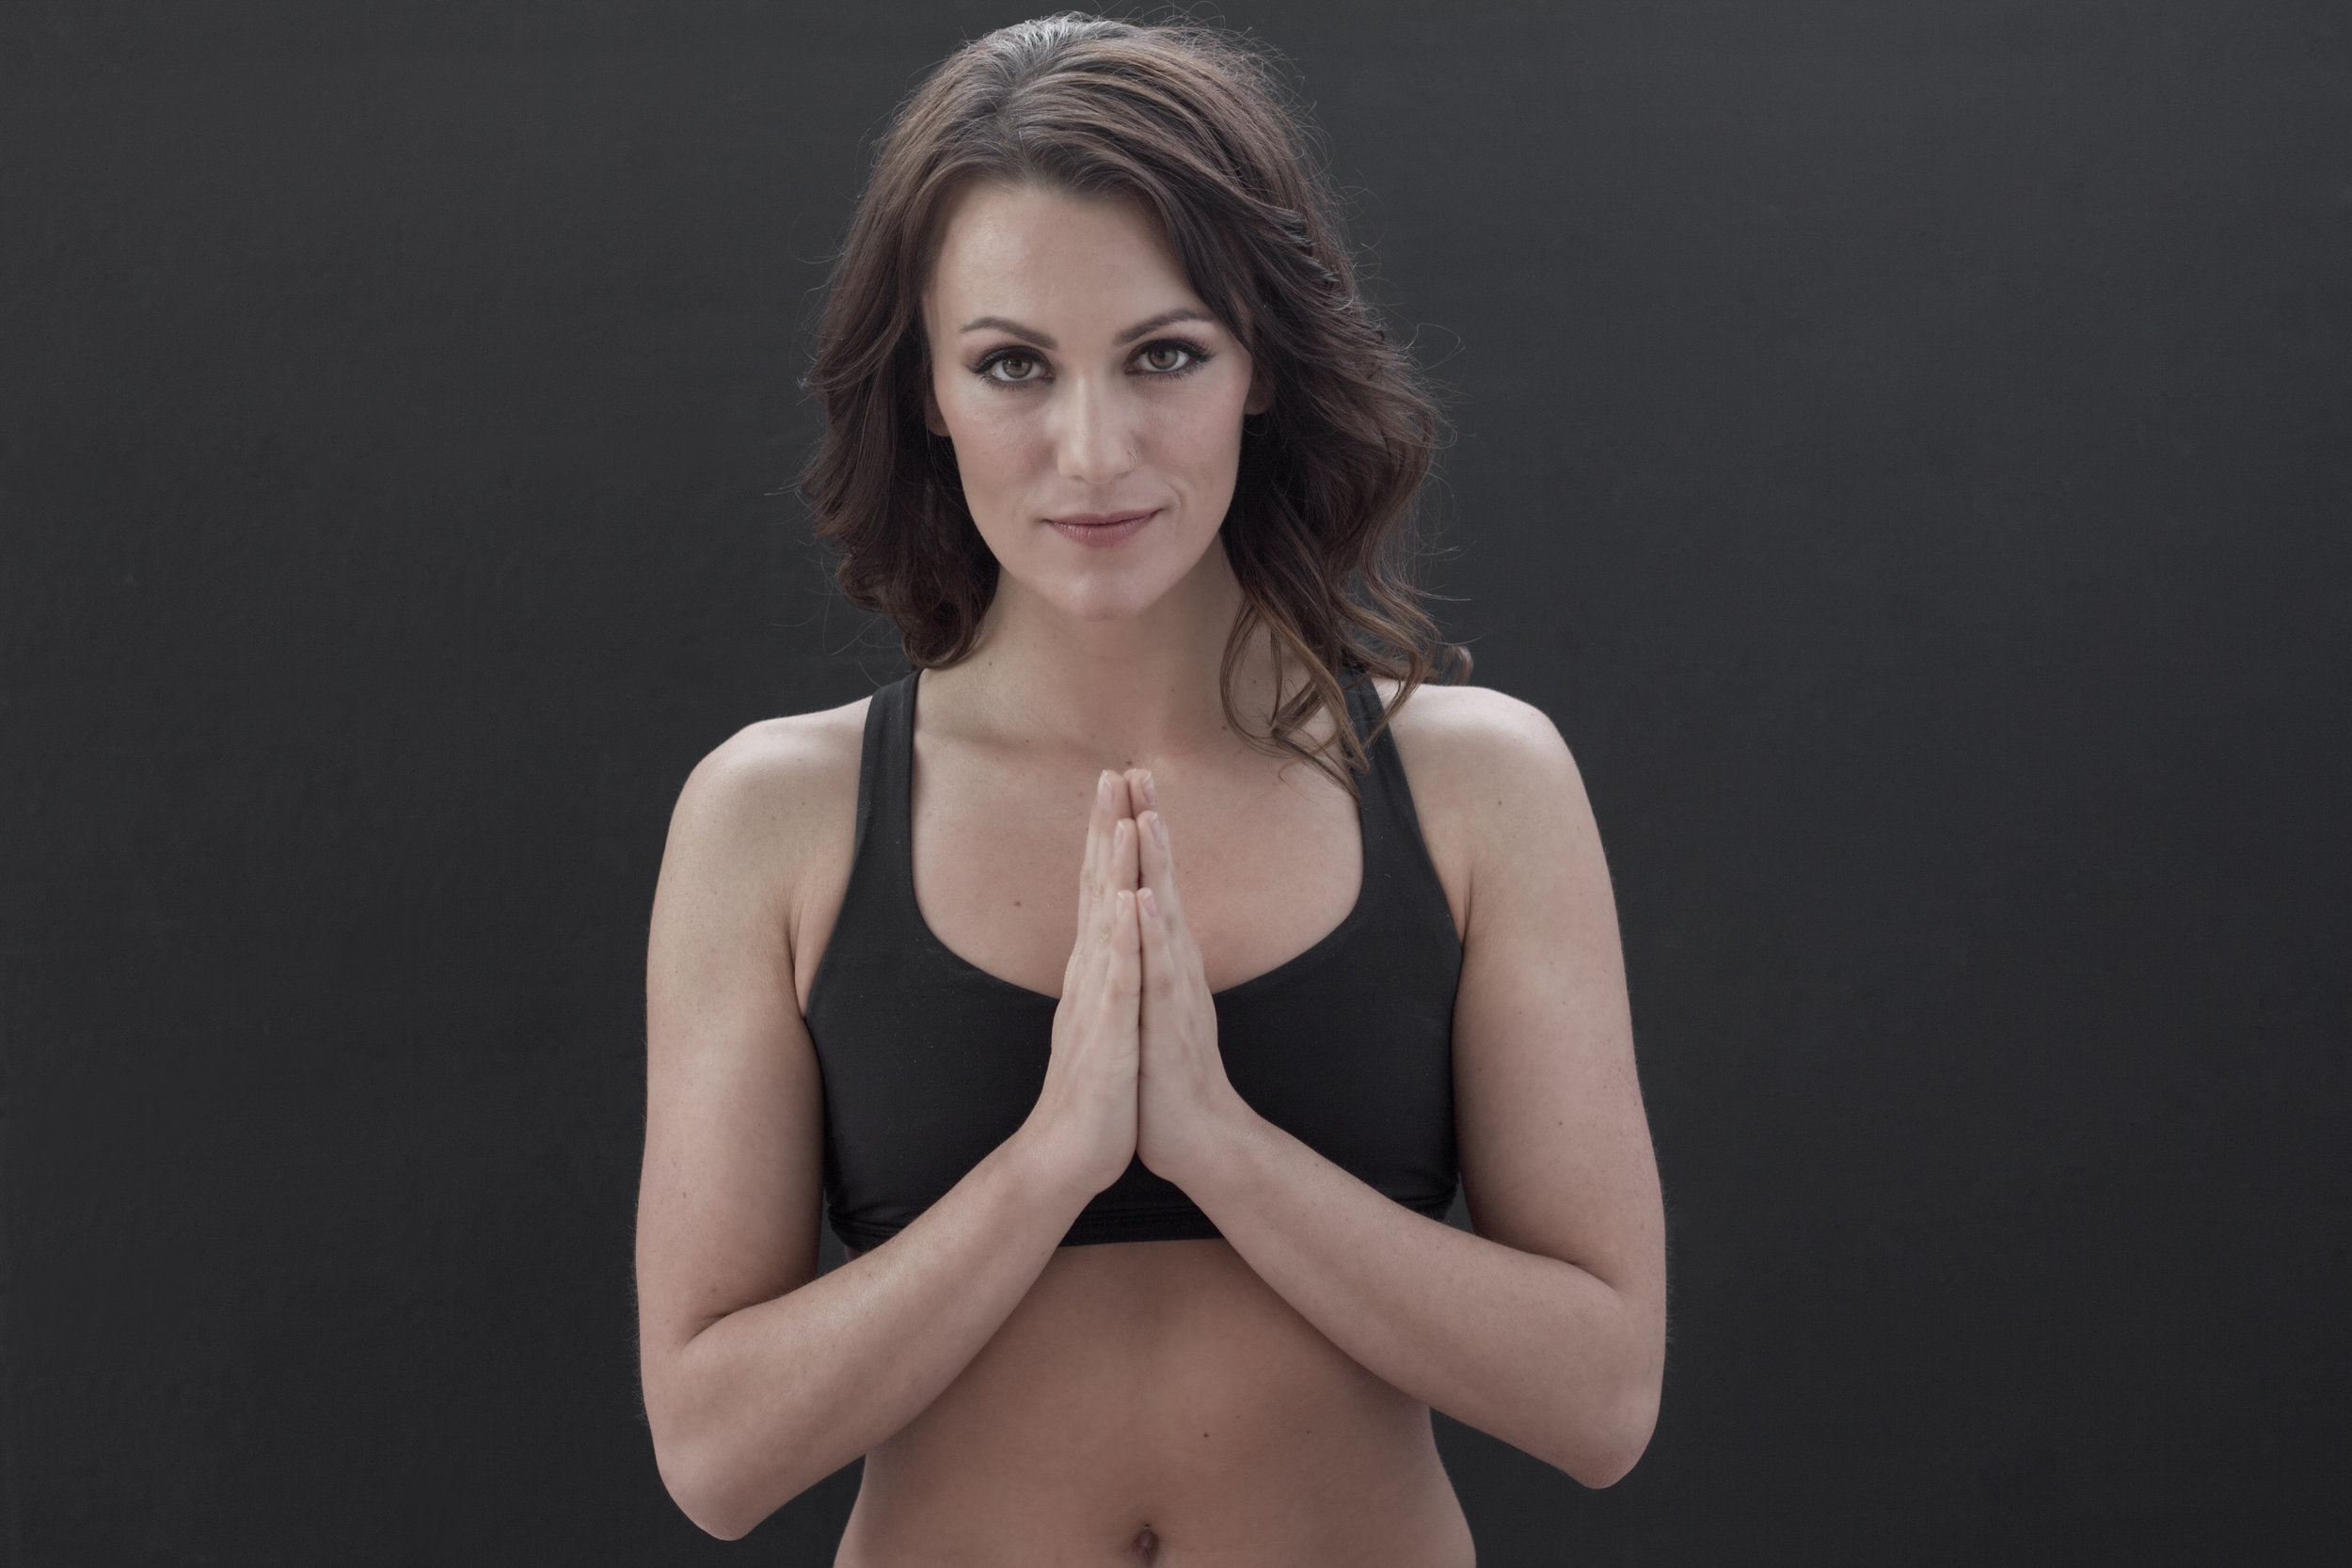 Diana Elterman, Owner and Yoga Instructor @ Ahimsa (previously Hot Power Yoga)